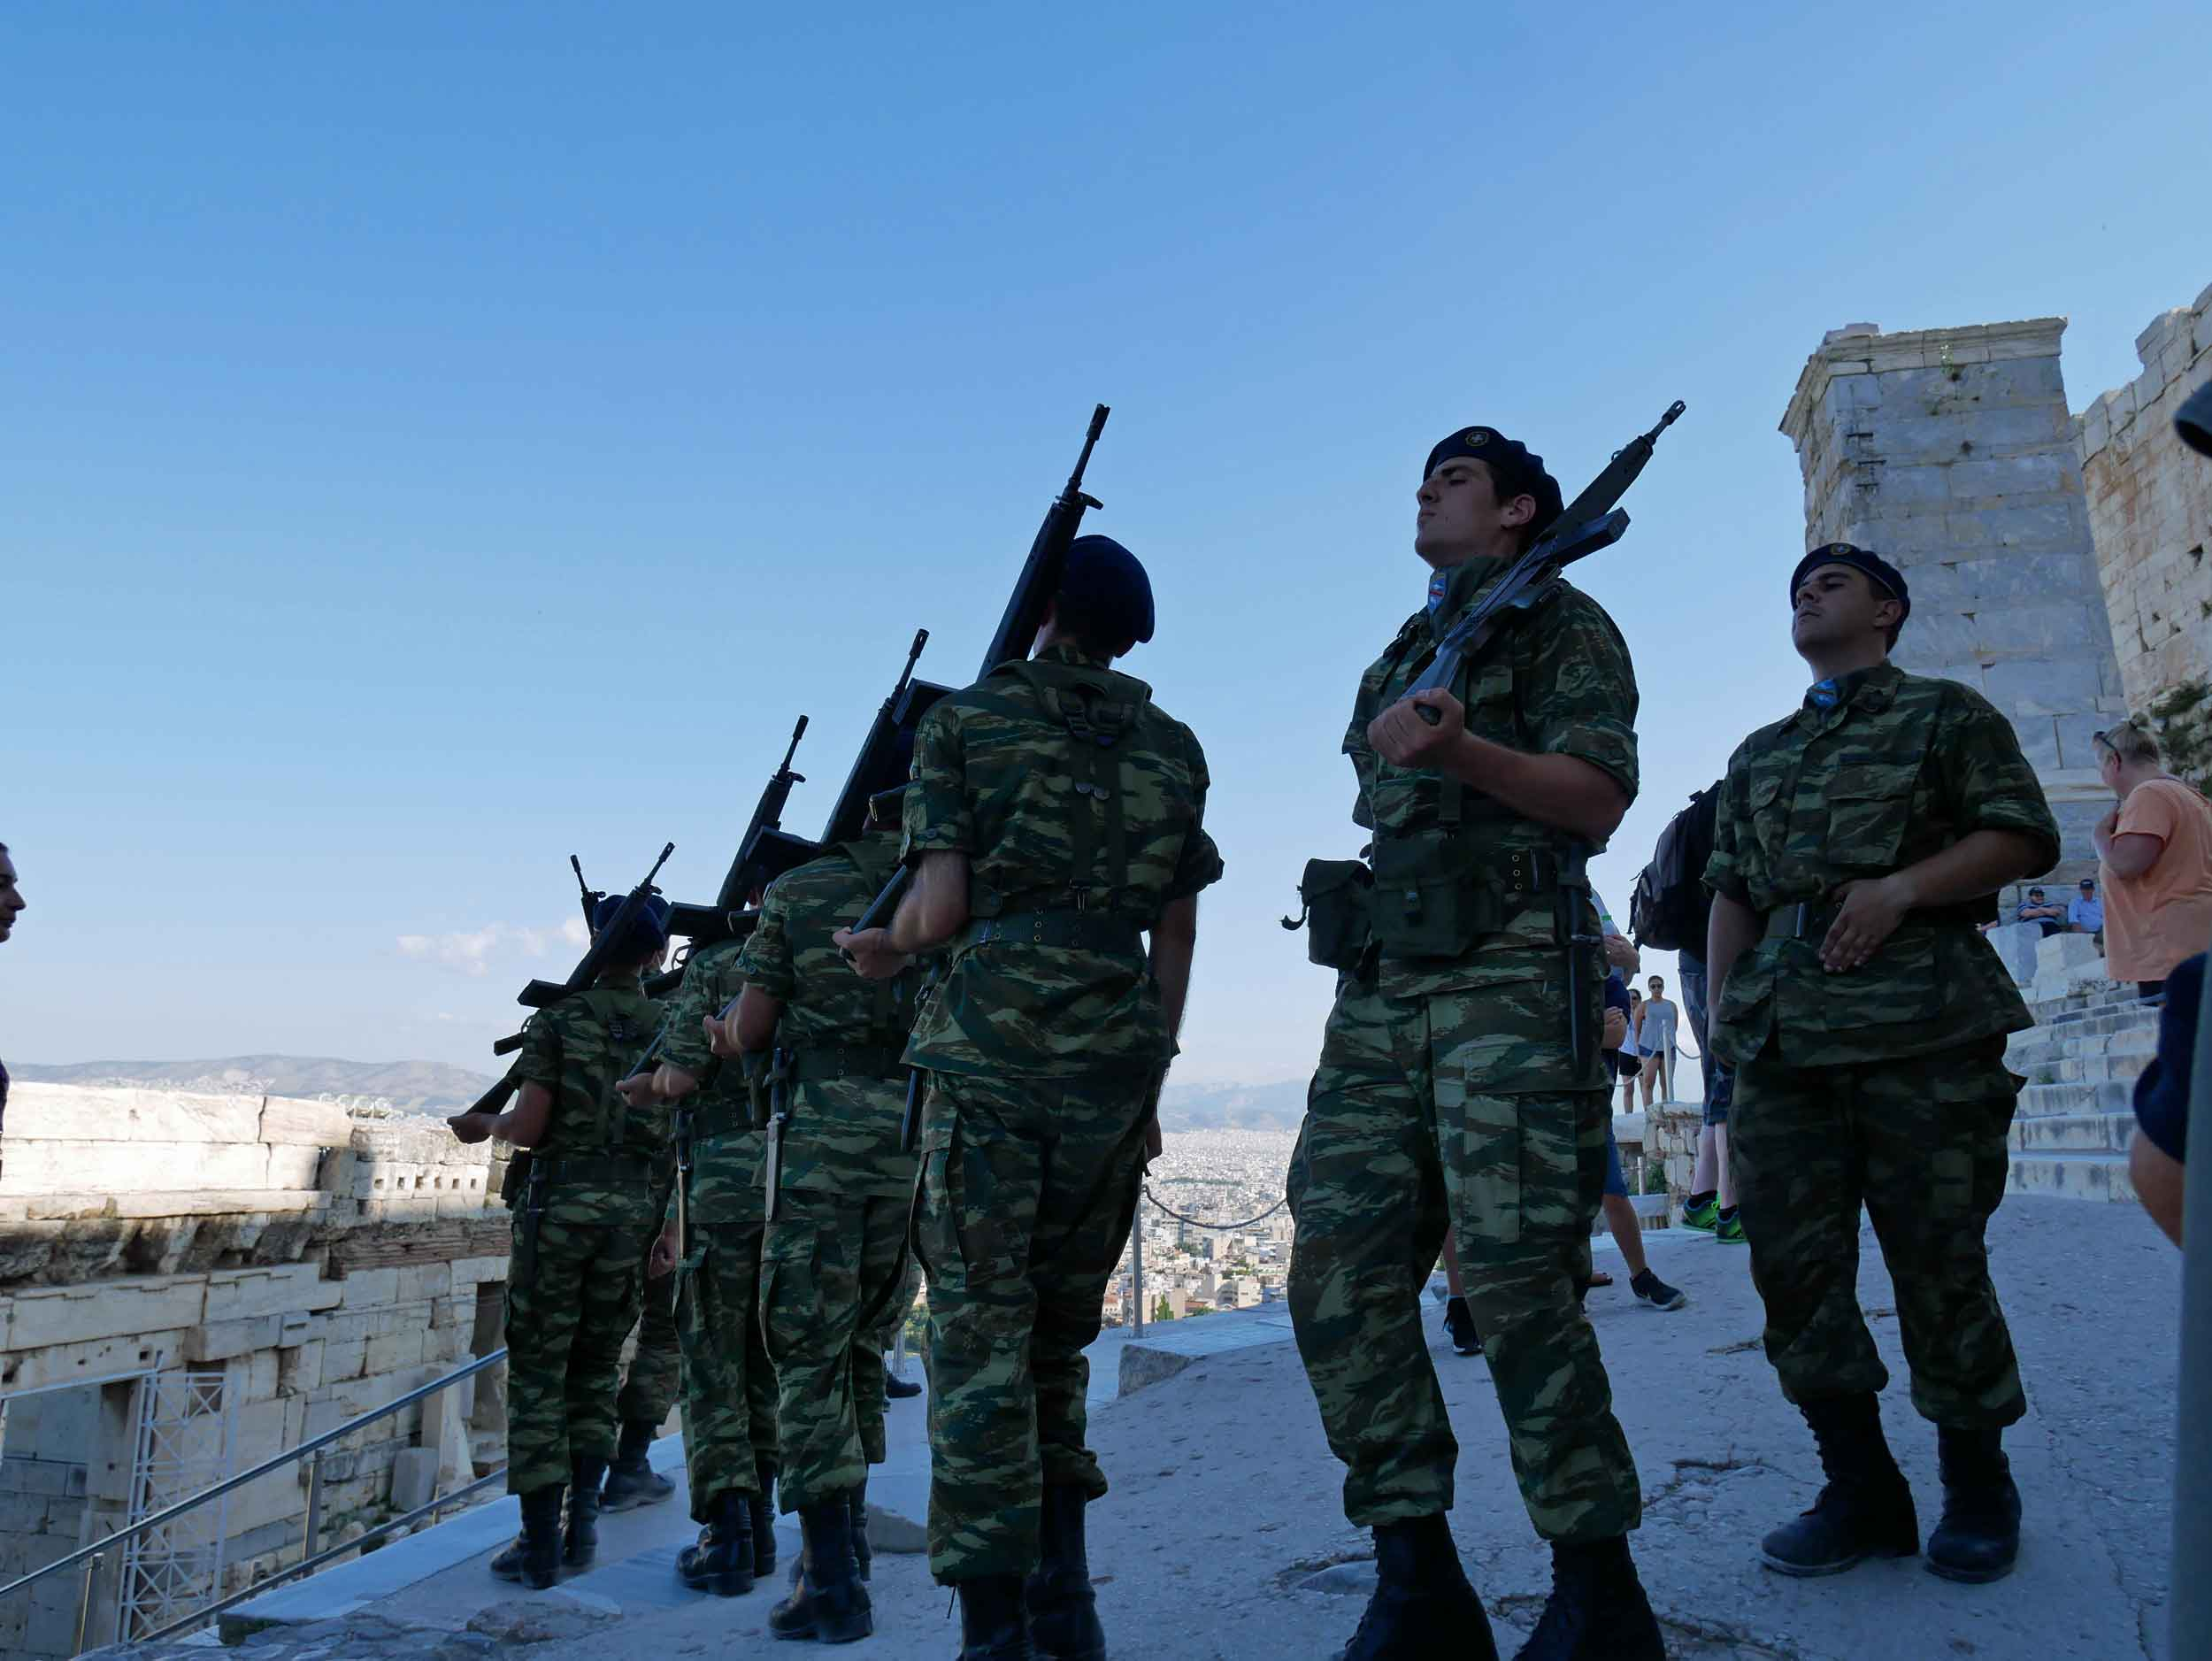 Greek army soldiers at the Acropolis